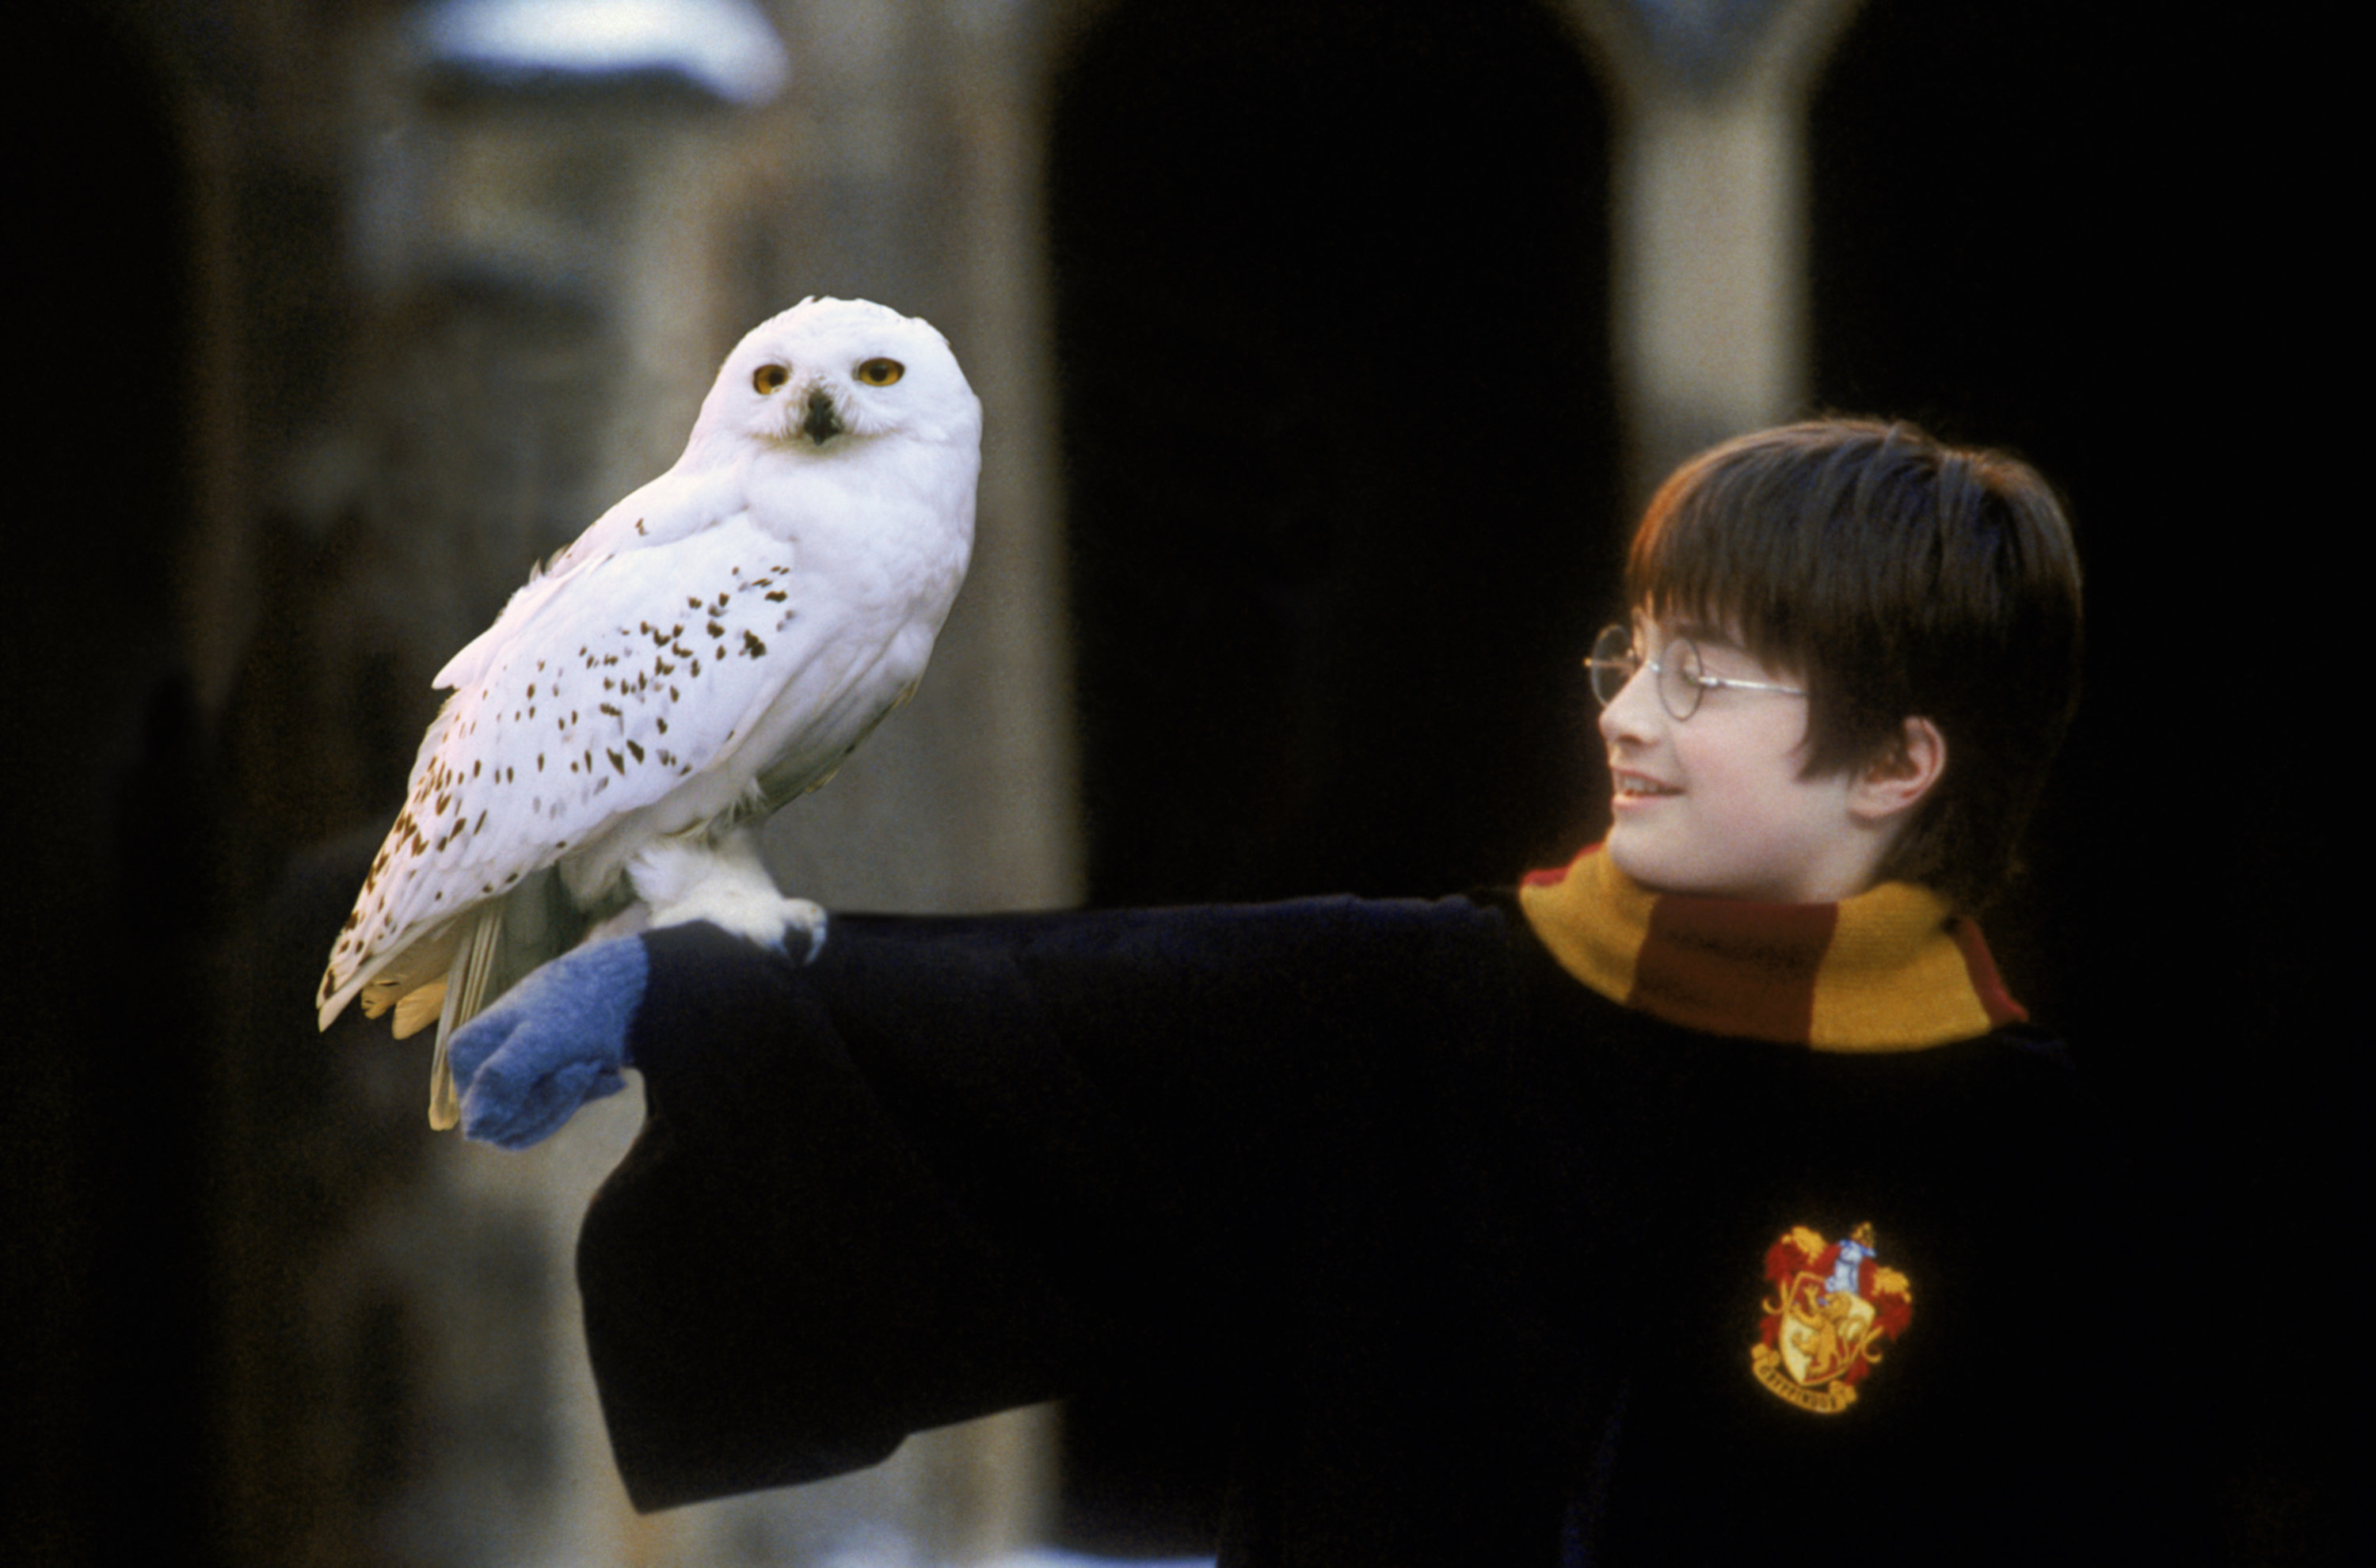 Harry with Hedwig on his arm from the Philosopher's Stone